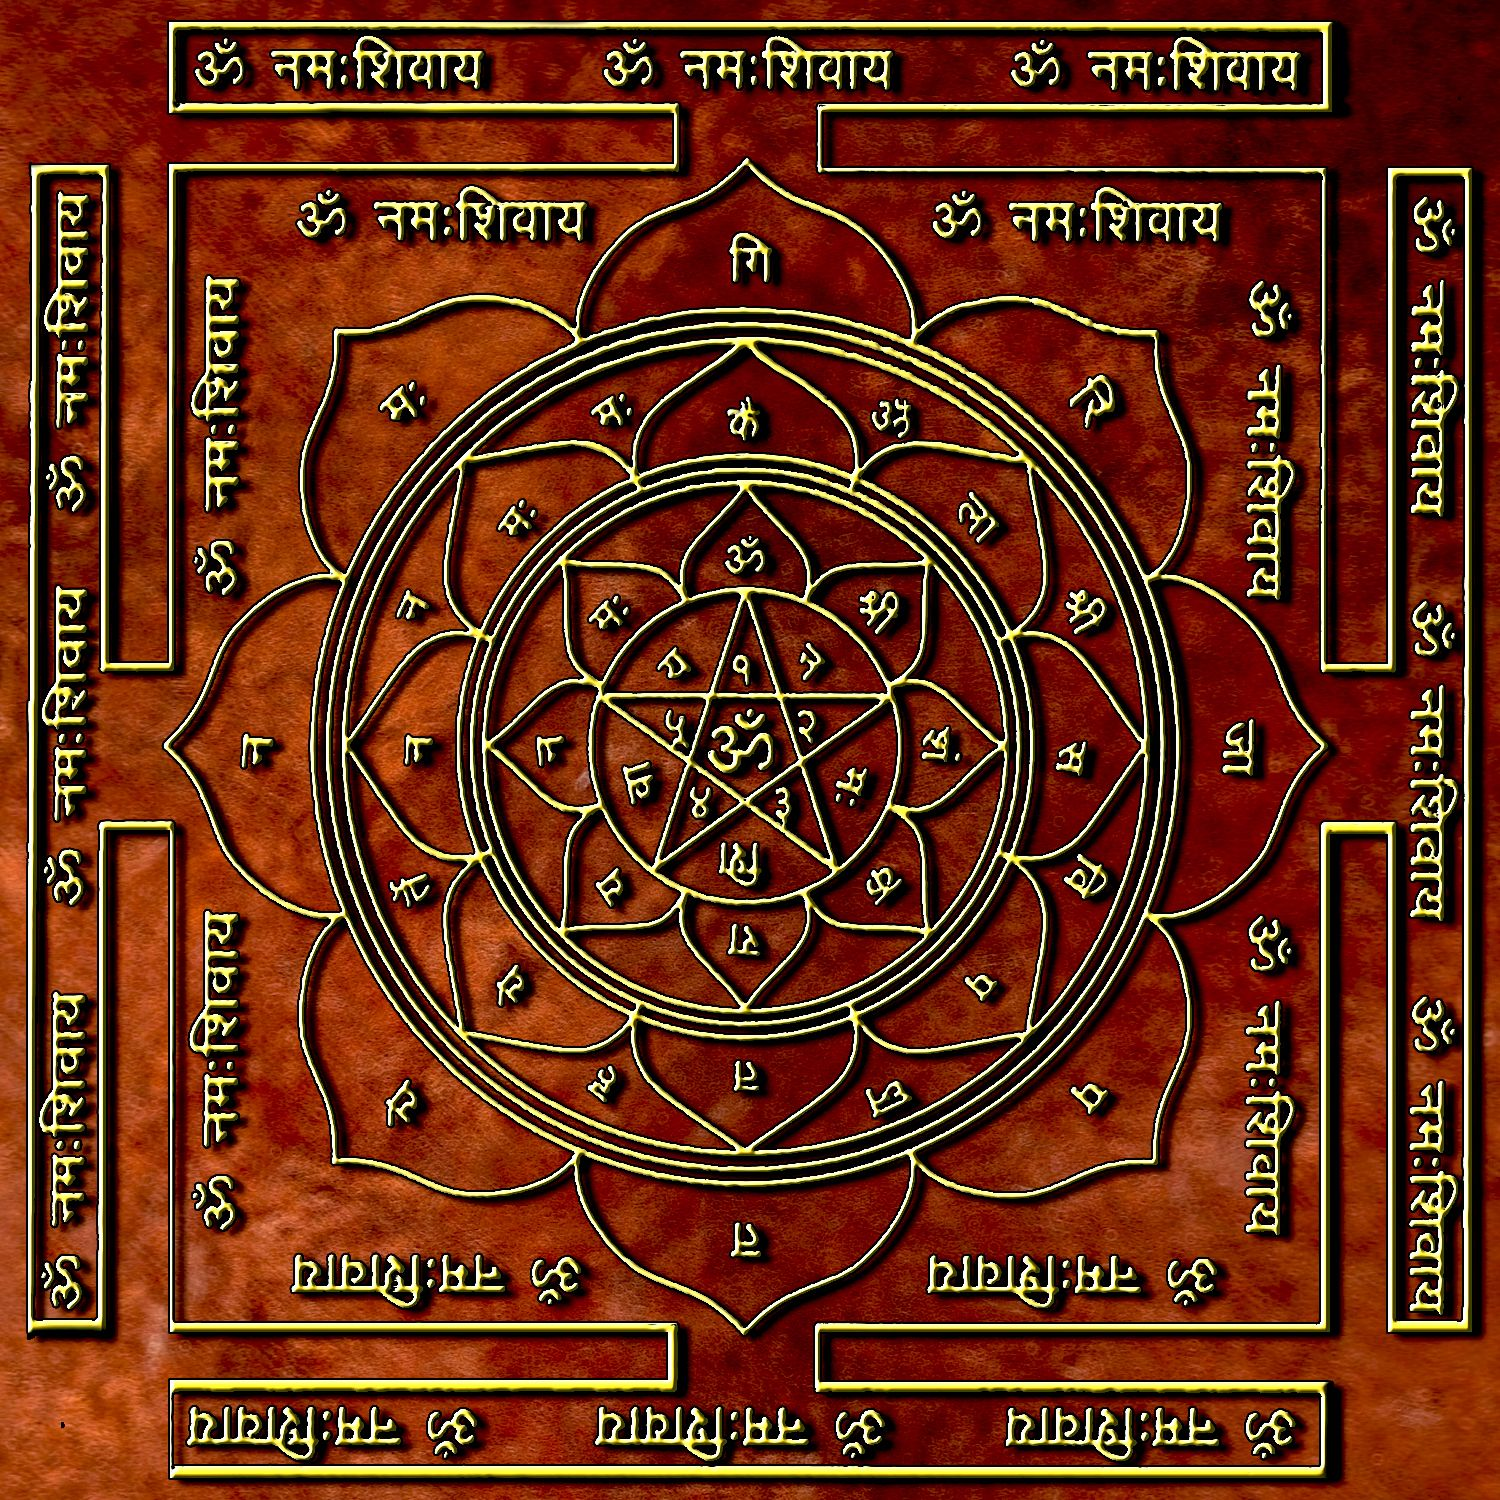 Mahamrityunjaya Yantra Download for Healing Be well - Heal